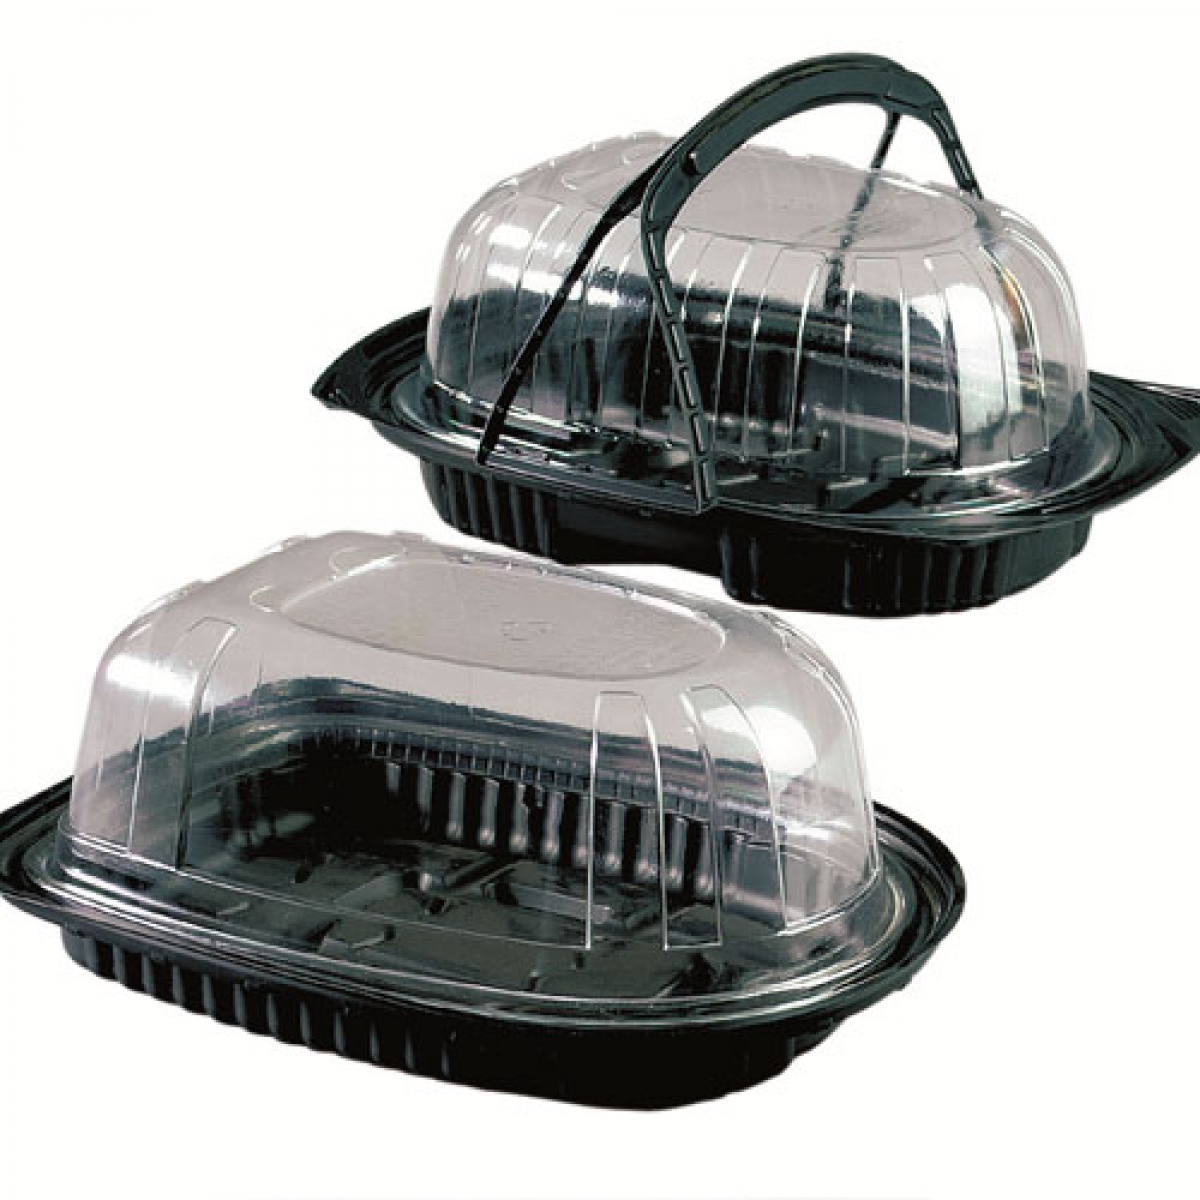 black chicken container with lid 320*225*110